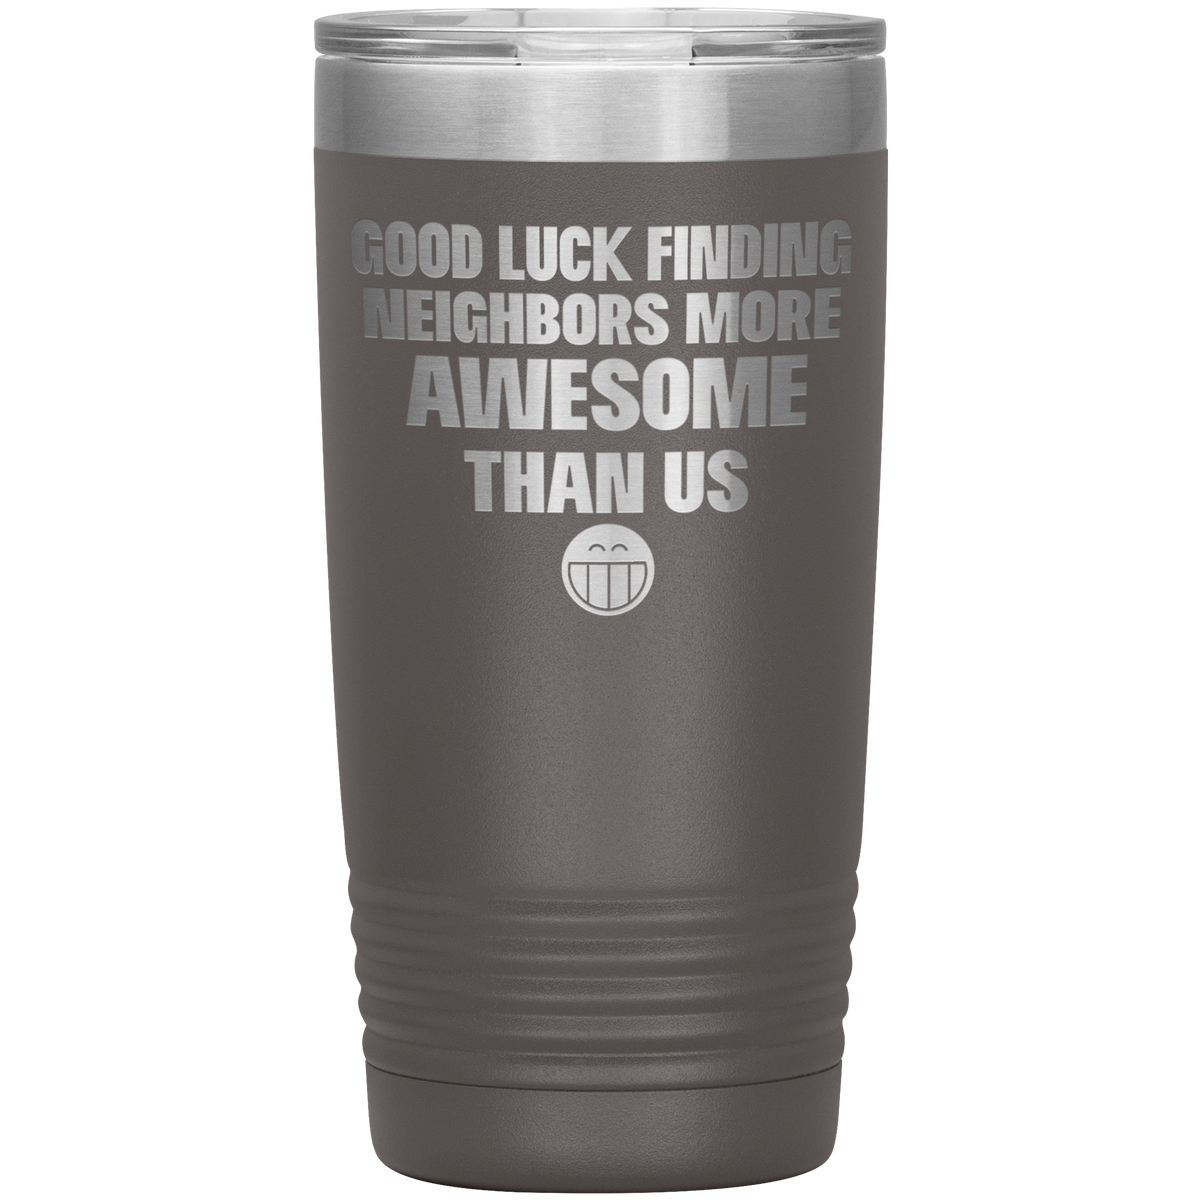 Neighbor Moving Away Gift Tumbler Good Luck